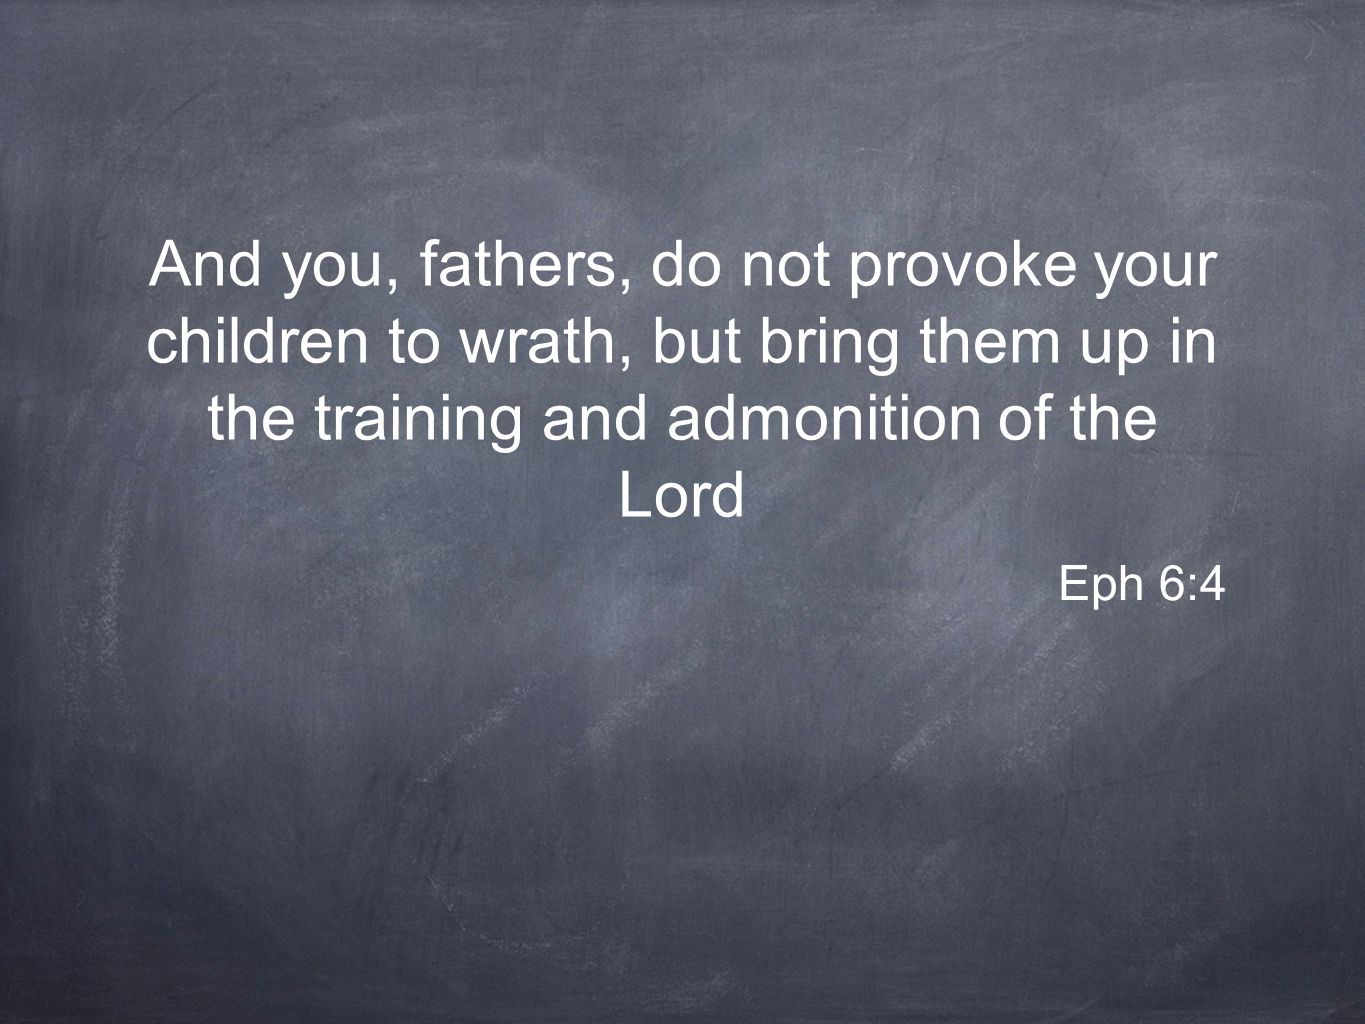 And you, fathers, do not provoke your children to wrath, but bring them up in the training and admonition of the Lord Eph 6:4